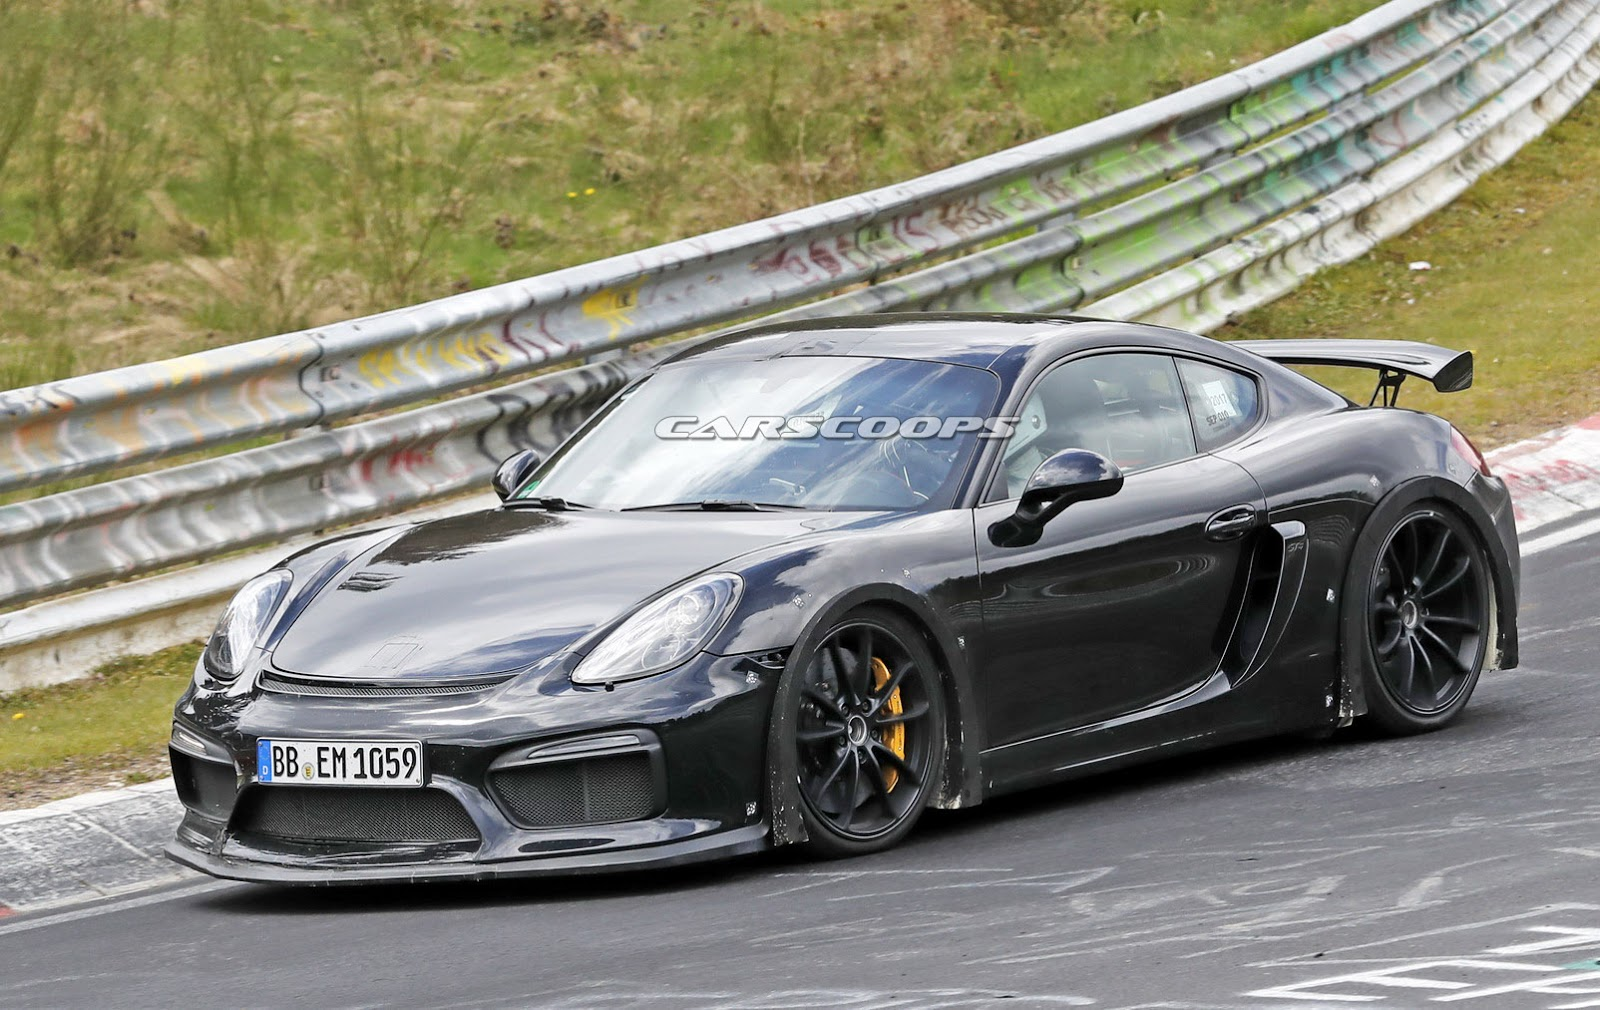 Cayman Gt4 Rs >> Here's The New 2019 Porsche 718 Cayman GT4 - carscoops.com